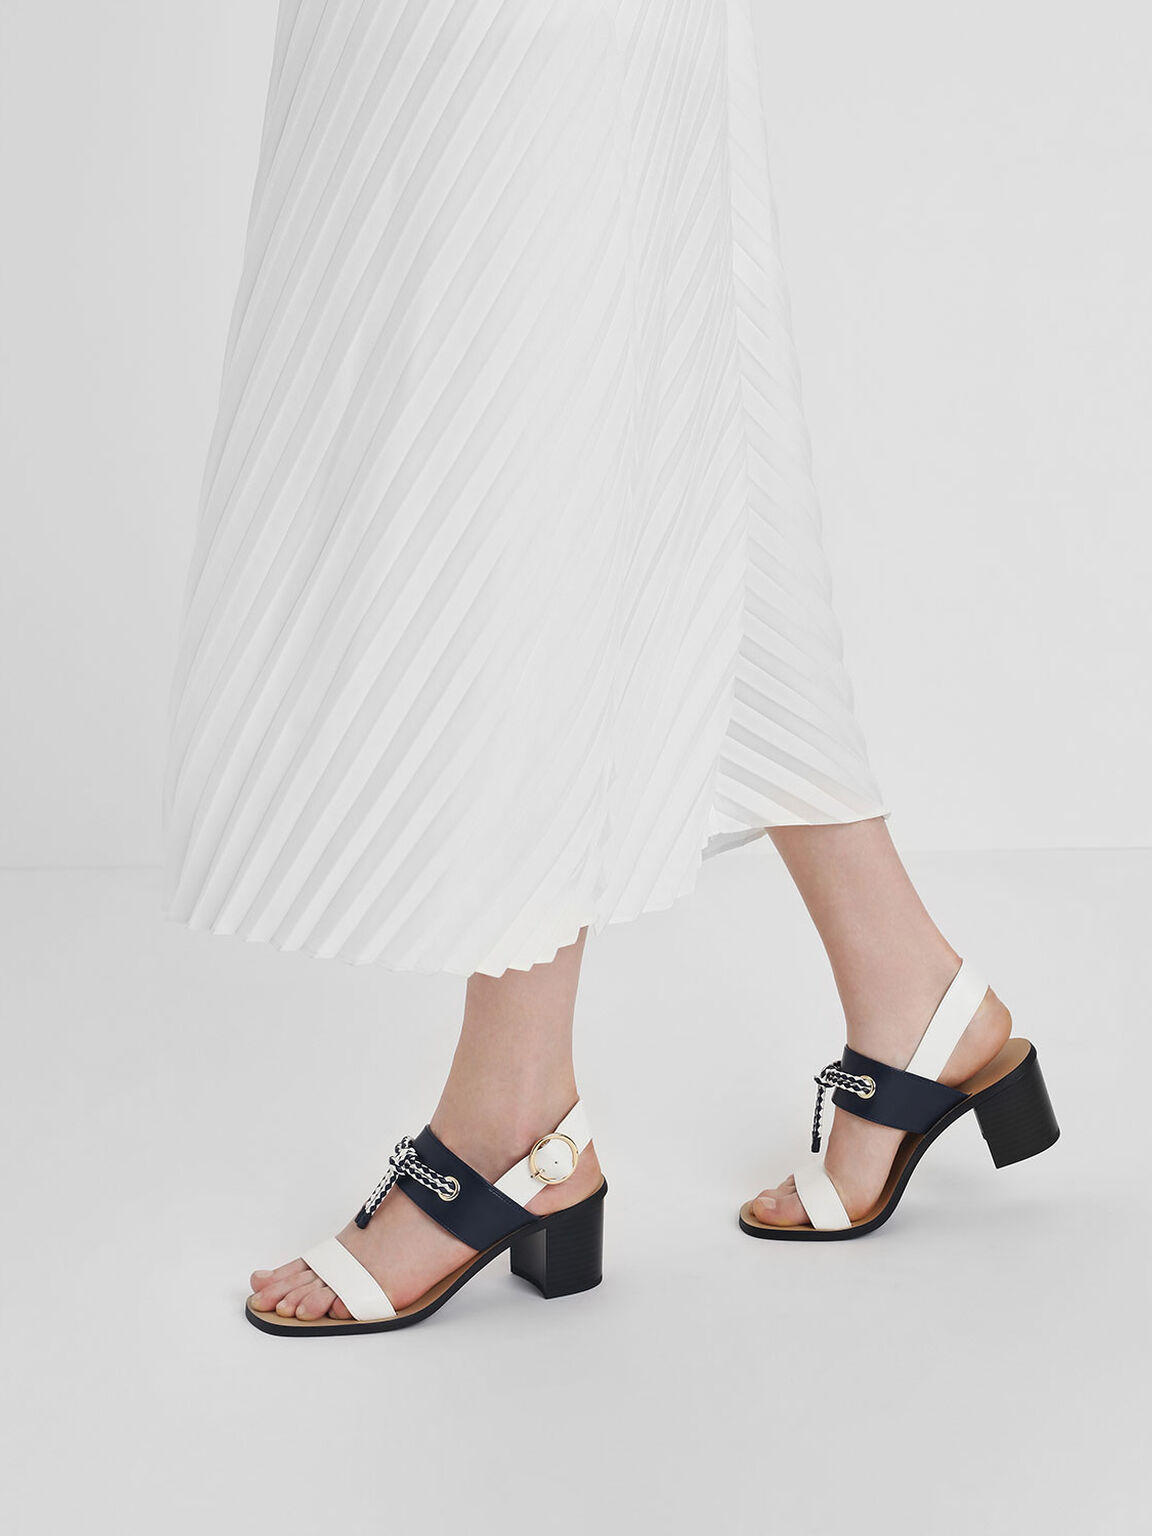 Braided Knot Block Heel Sandals, White, hi-res